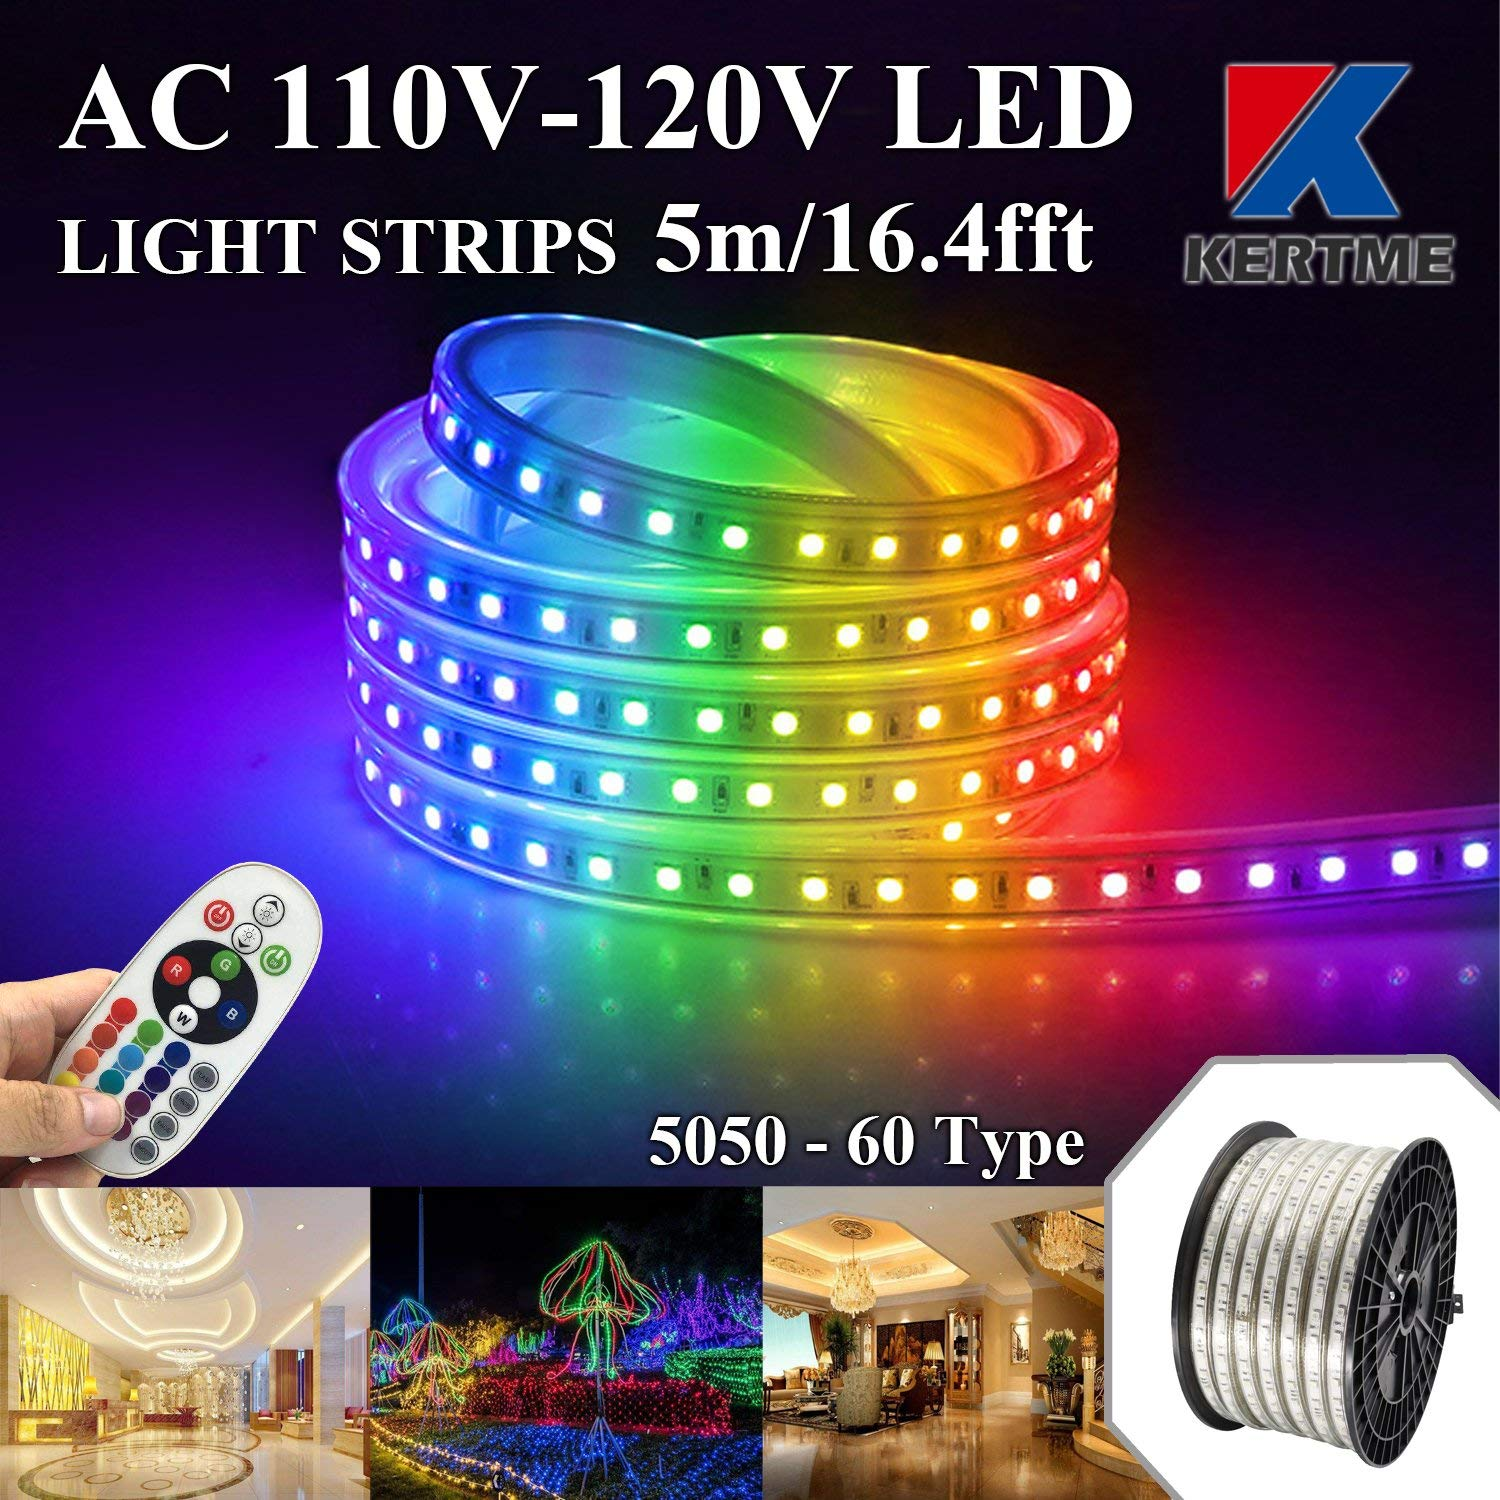 KERTME 5050-60 Type AC 110-120V RGB LED Strip Lights, Flexible/Waterproof/Dimmable/Multi-Colors/Multi-Modes LED Rope Light + 24 keys Remote for Home/Garden/Building Decoration (16.4ft/5m, RGB)